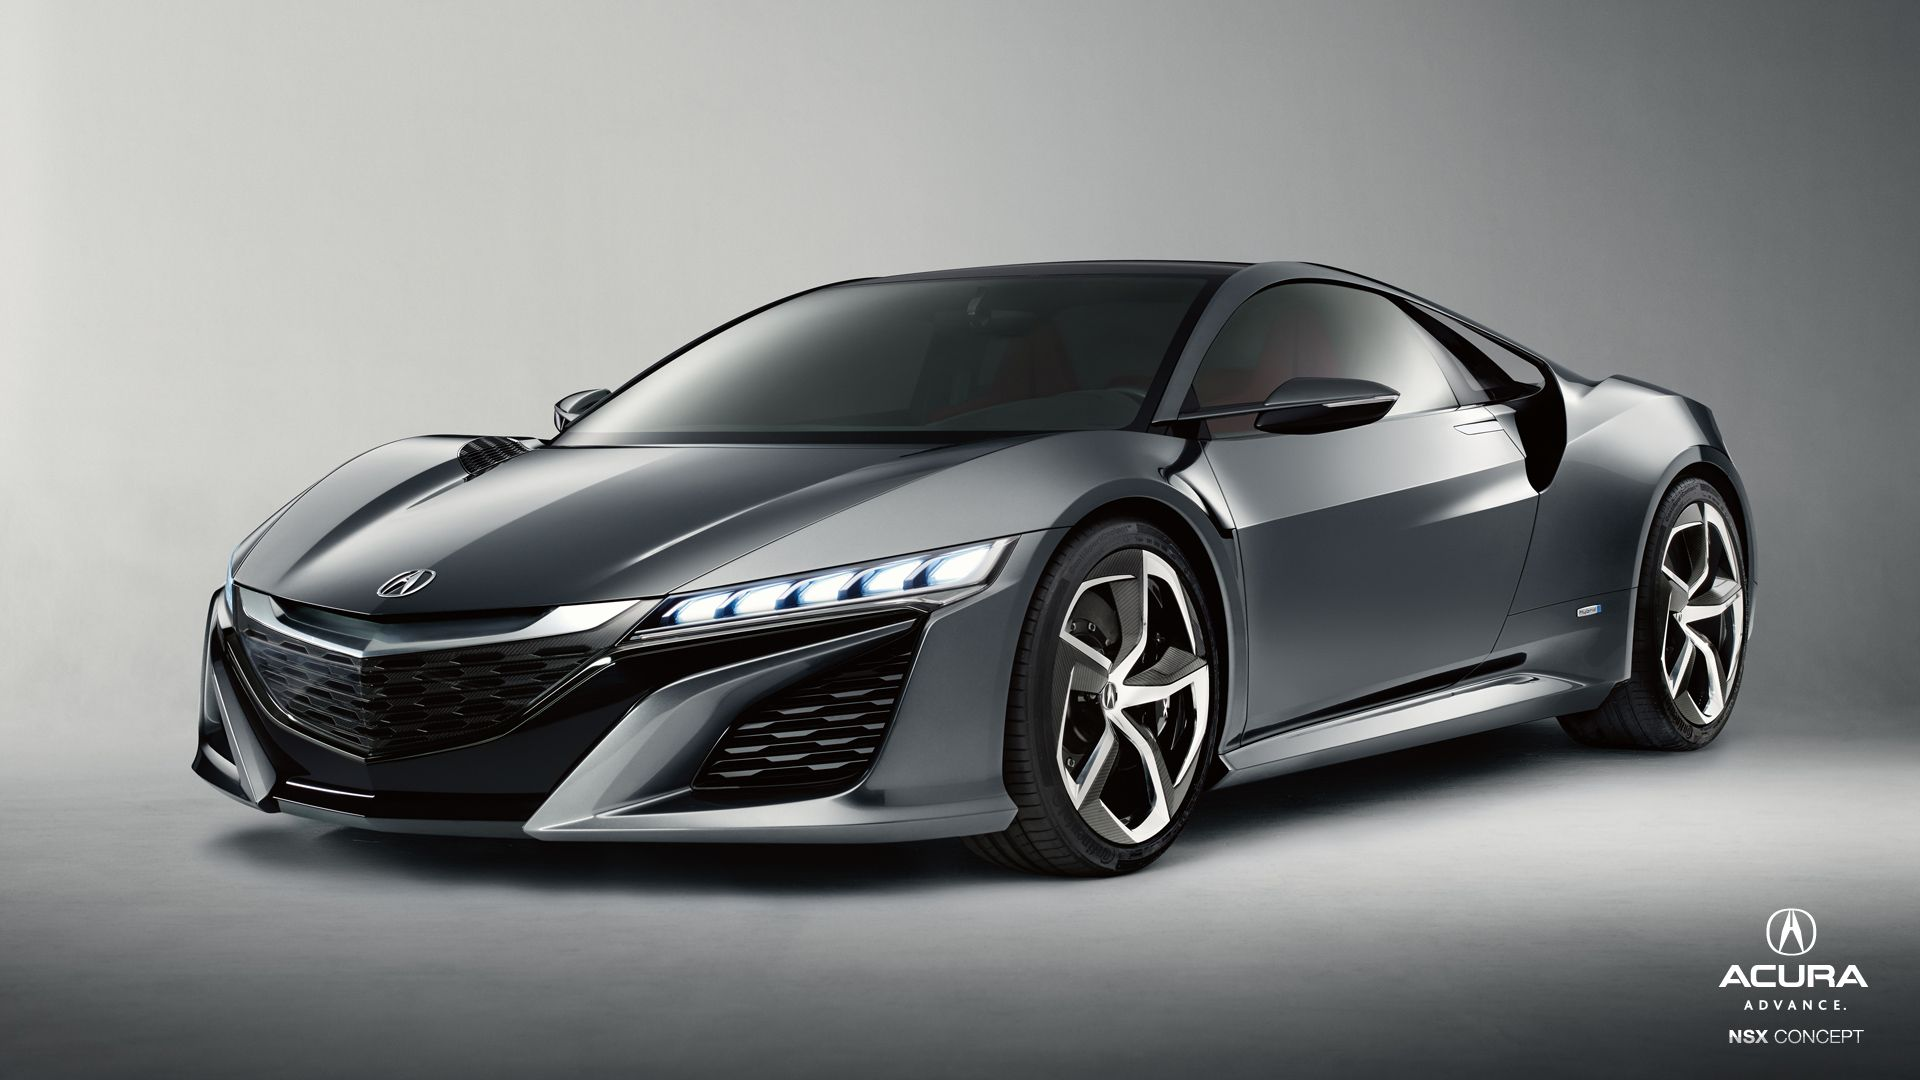 2017 acura nsx review specs and price http www autos